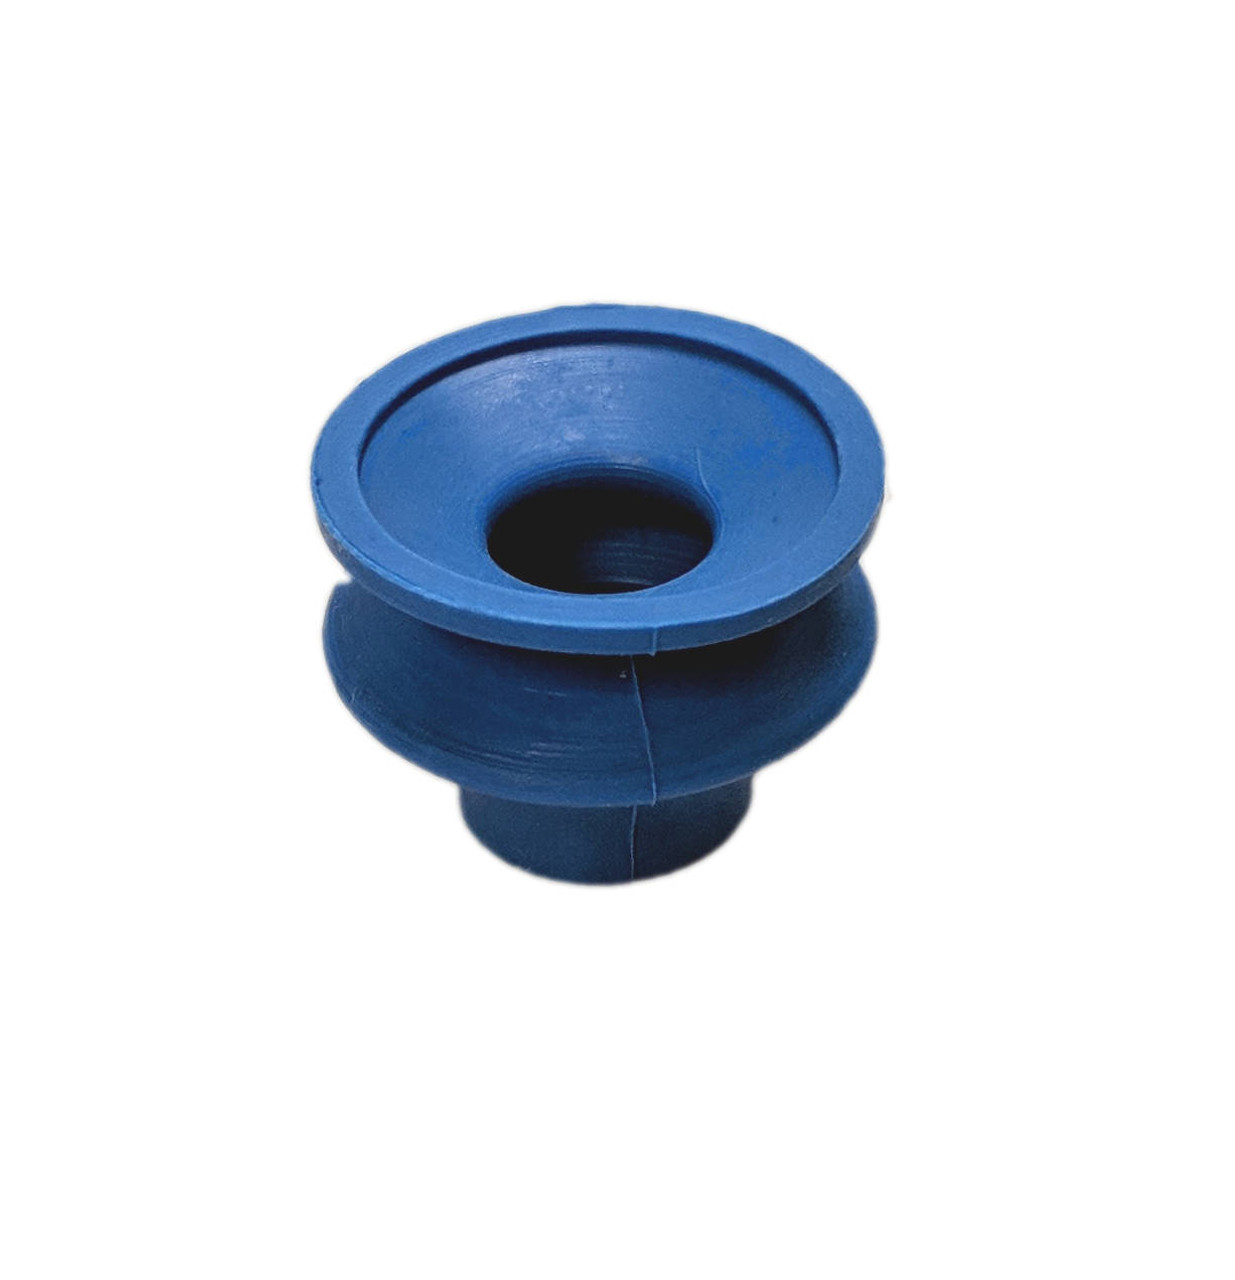 Big Bellow Suction Cups - 10 pack